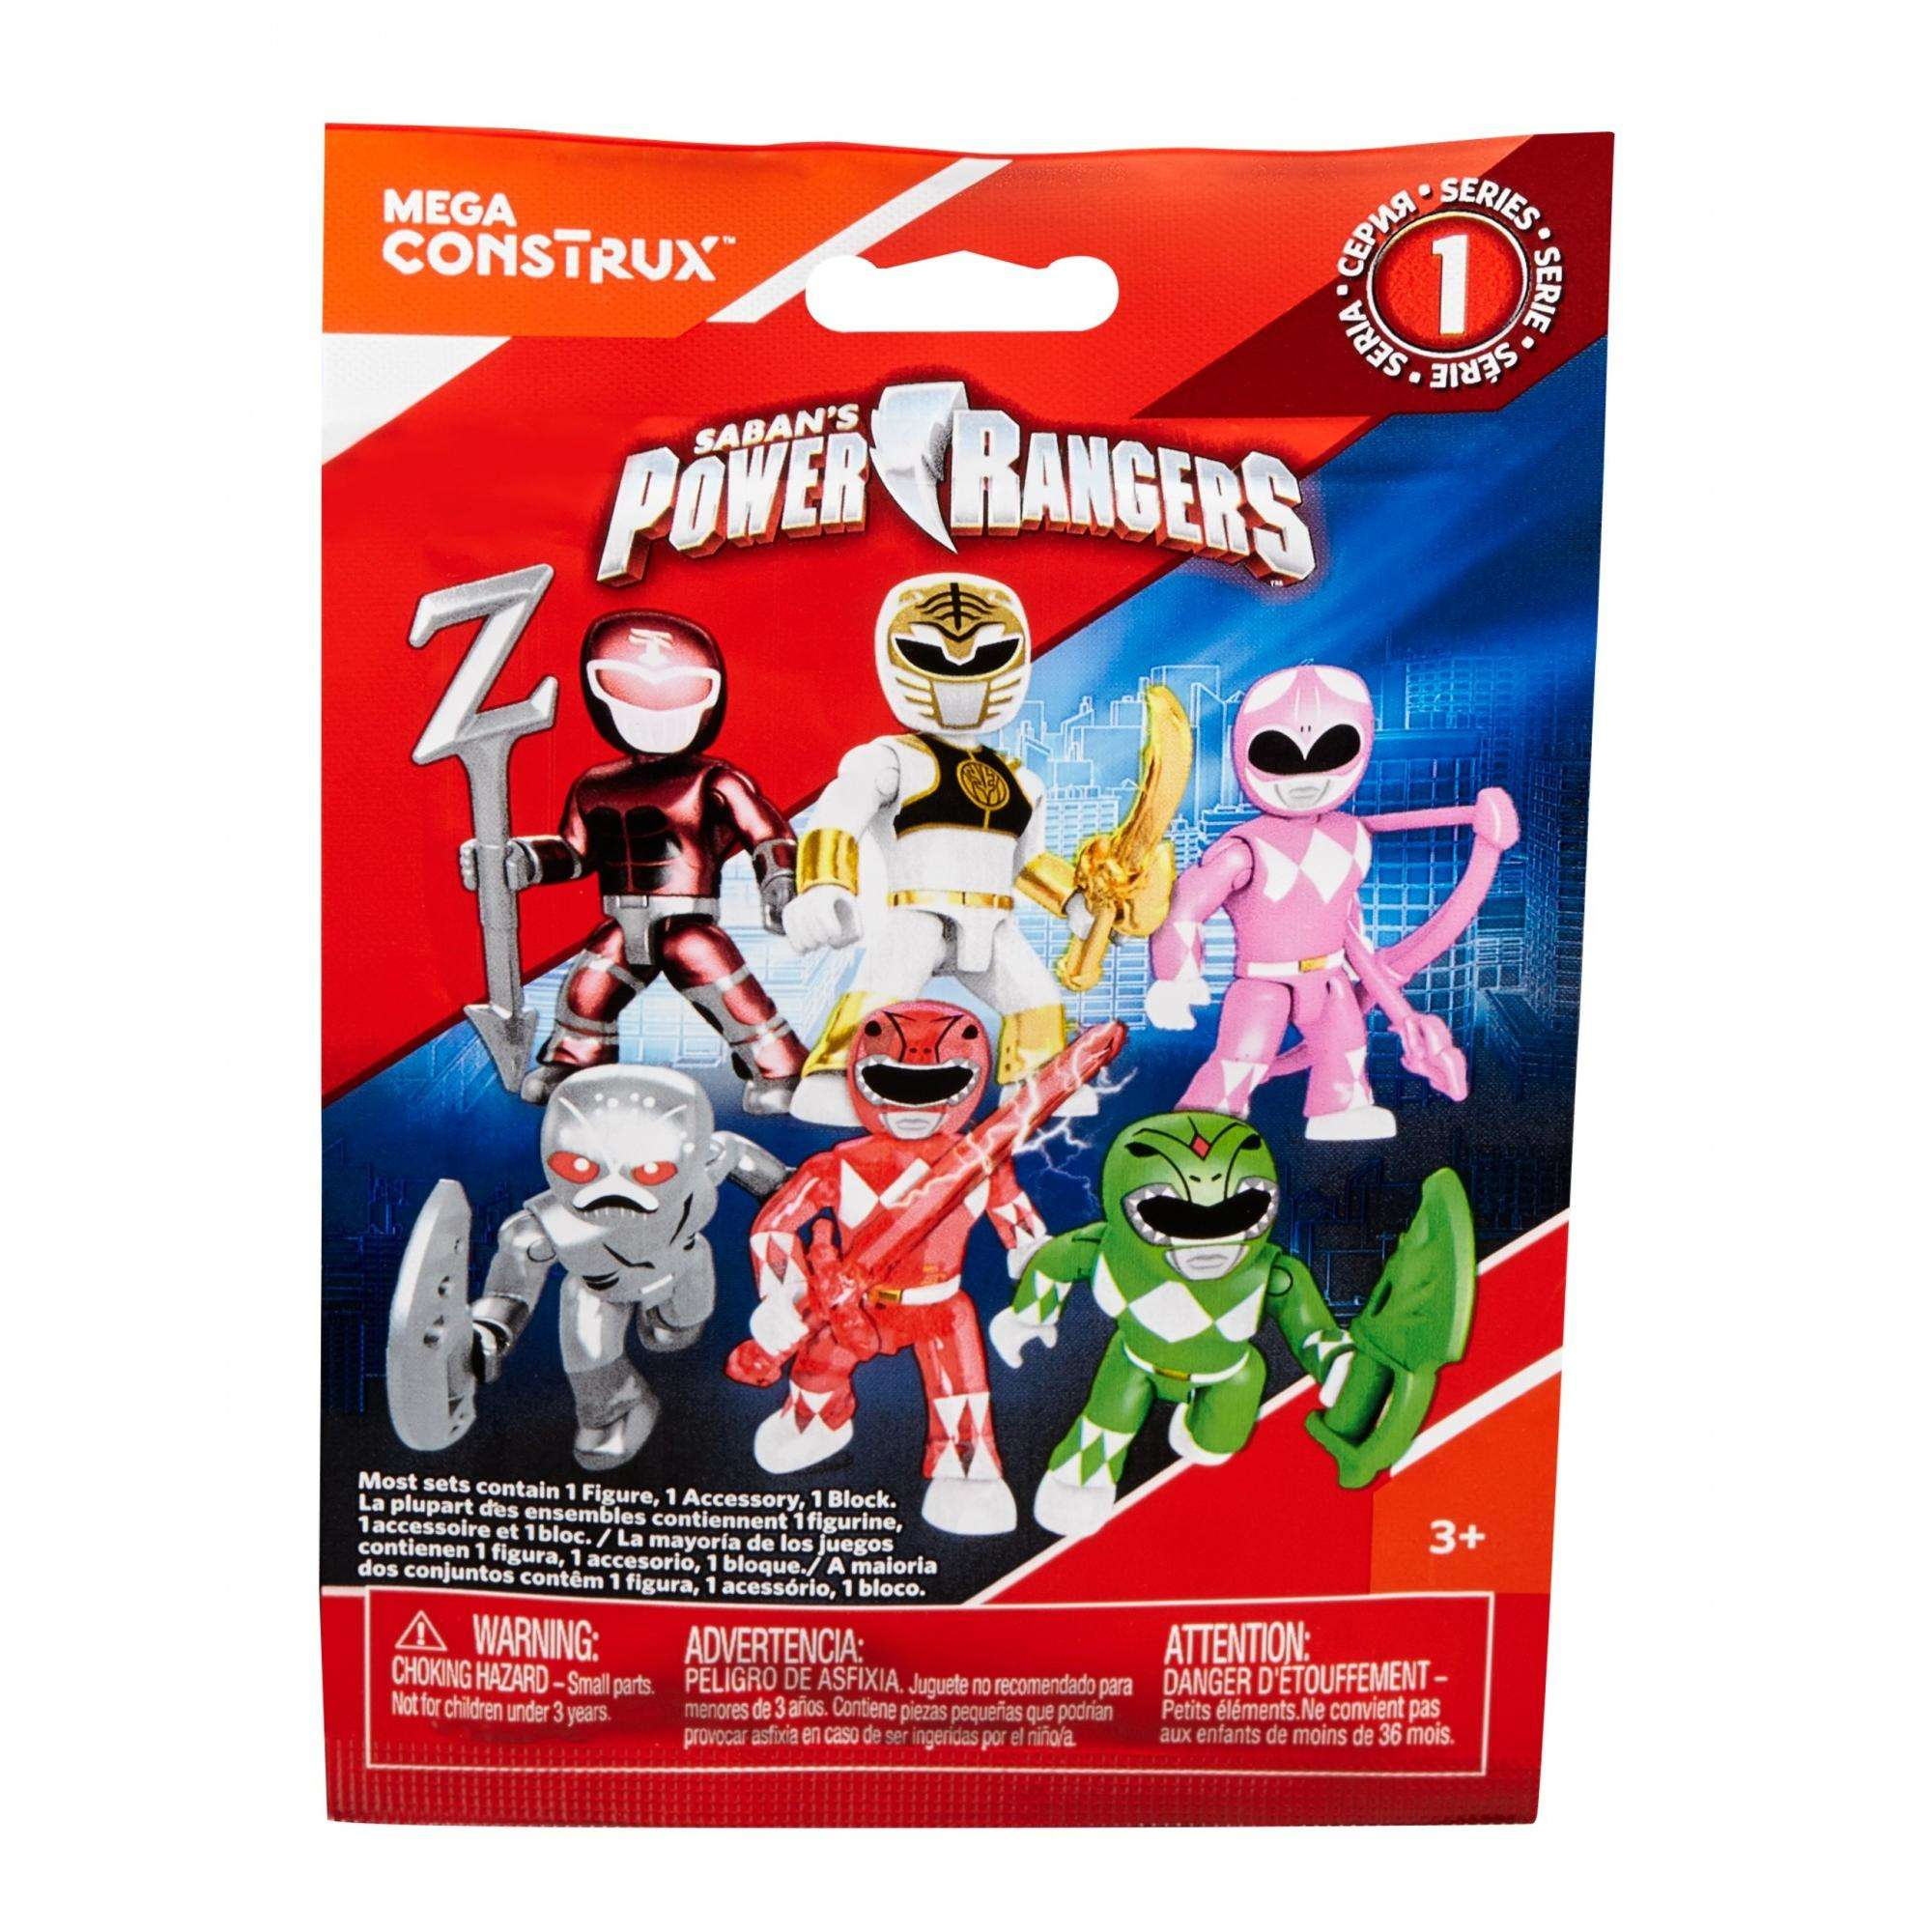 Mega Construx Power Rangers Micro Action Figure Mystery Bag (Blind Pack) by Mattel